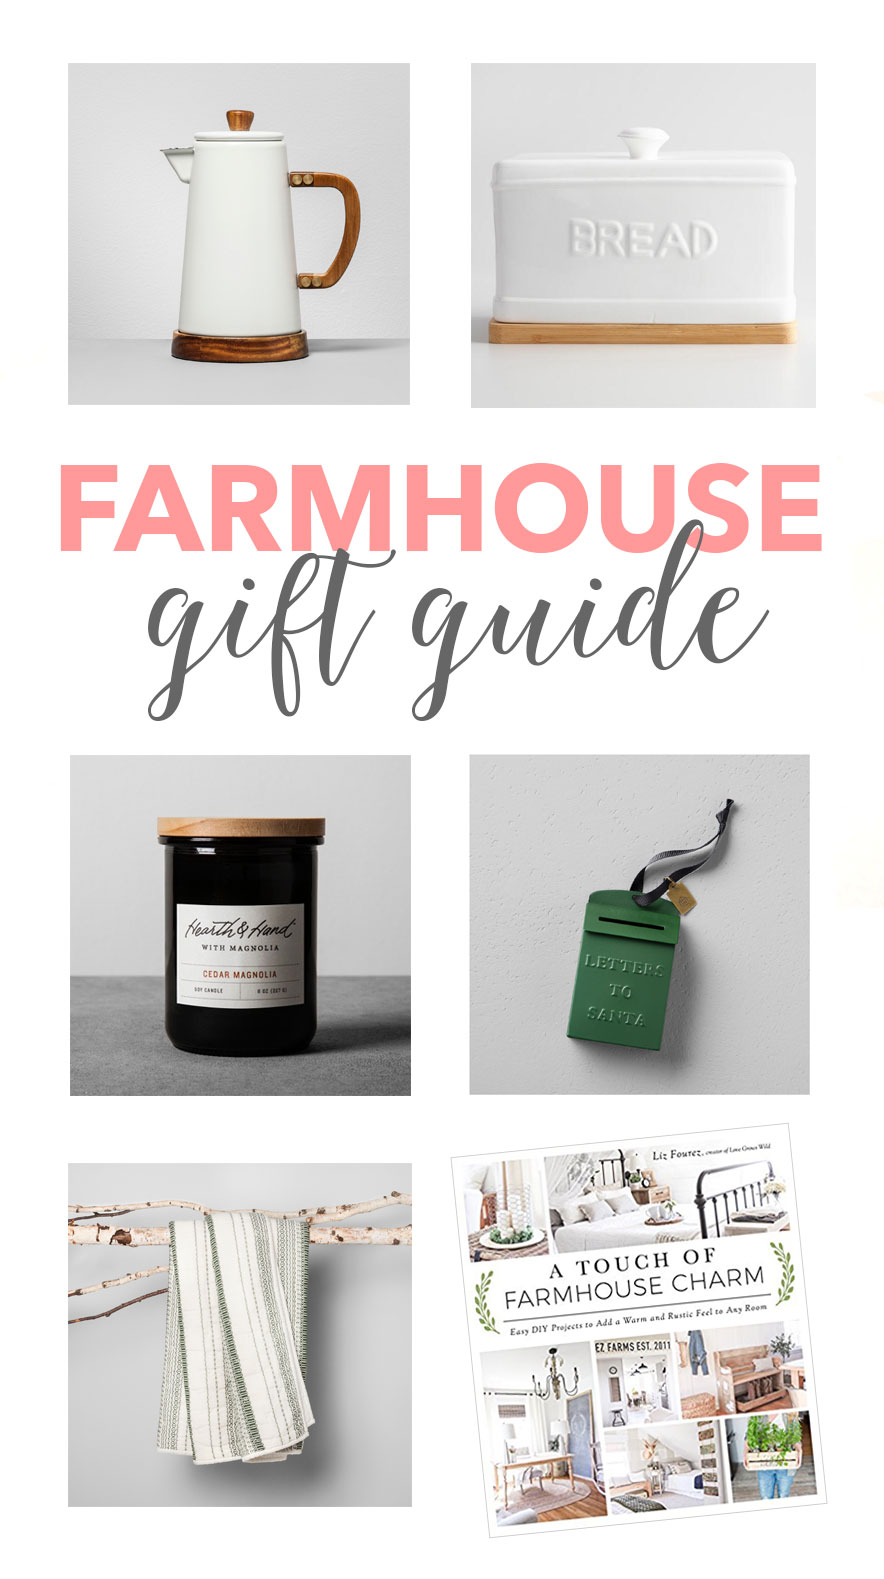 The perfect Farmhouse Gift Guide - great for any budget!